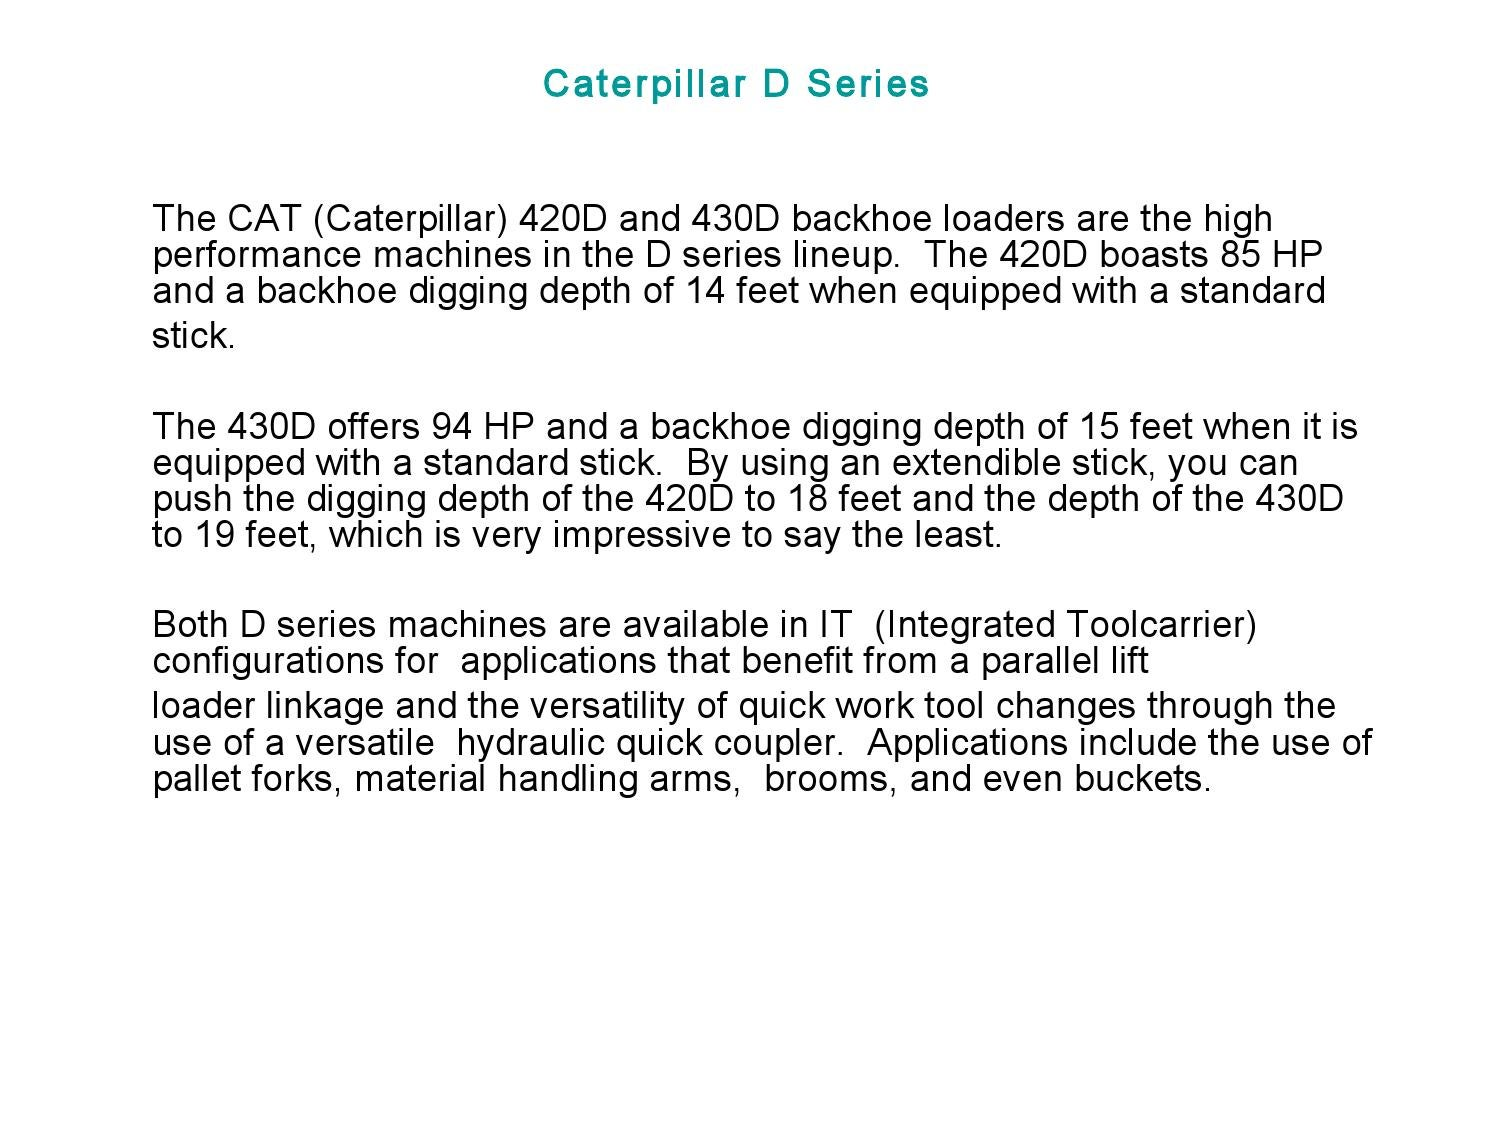 Caterpillar D Series by crystal cane - issuu